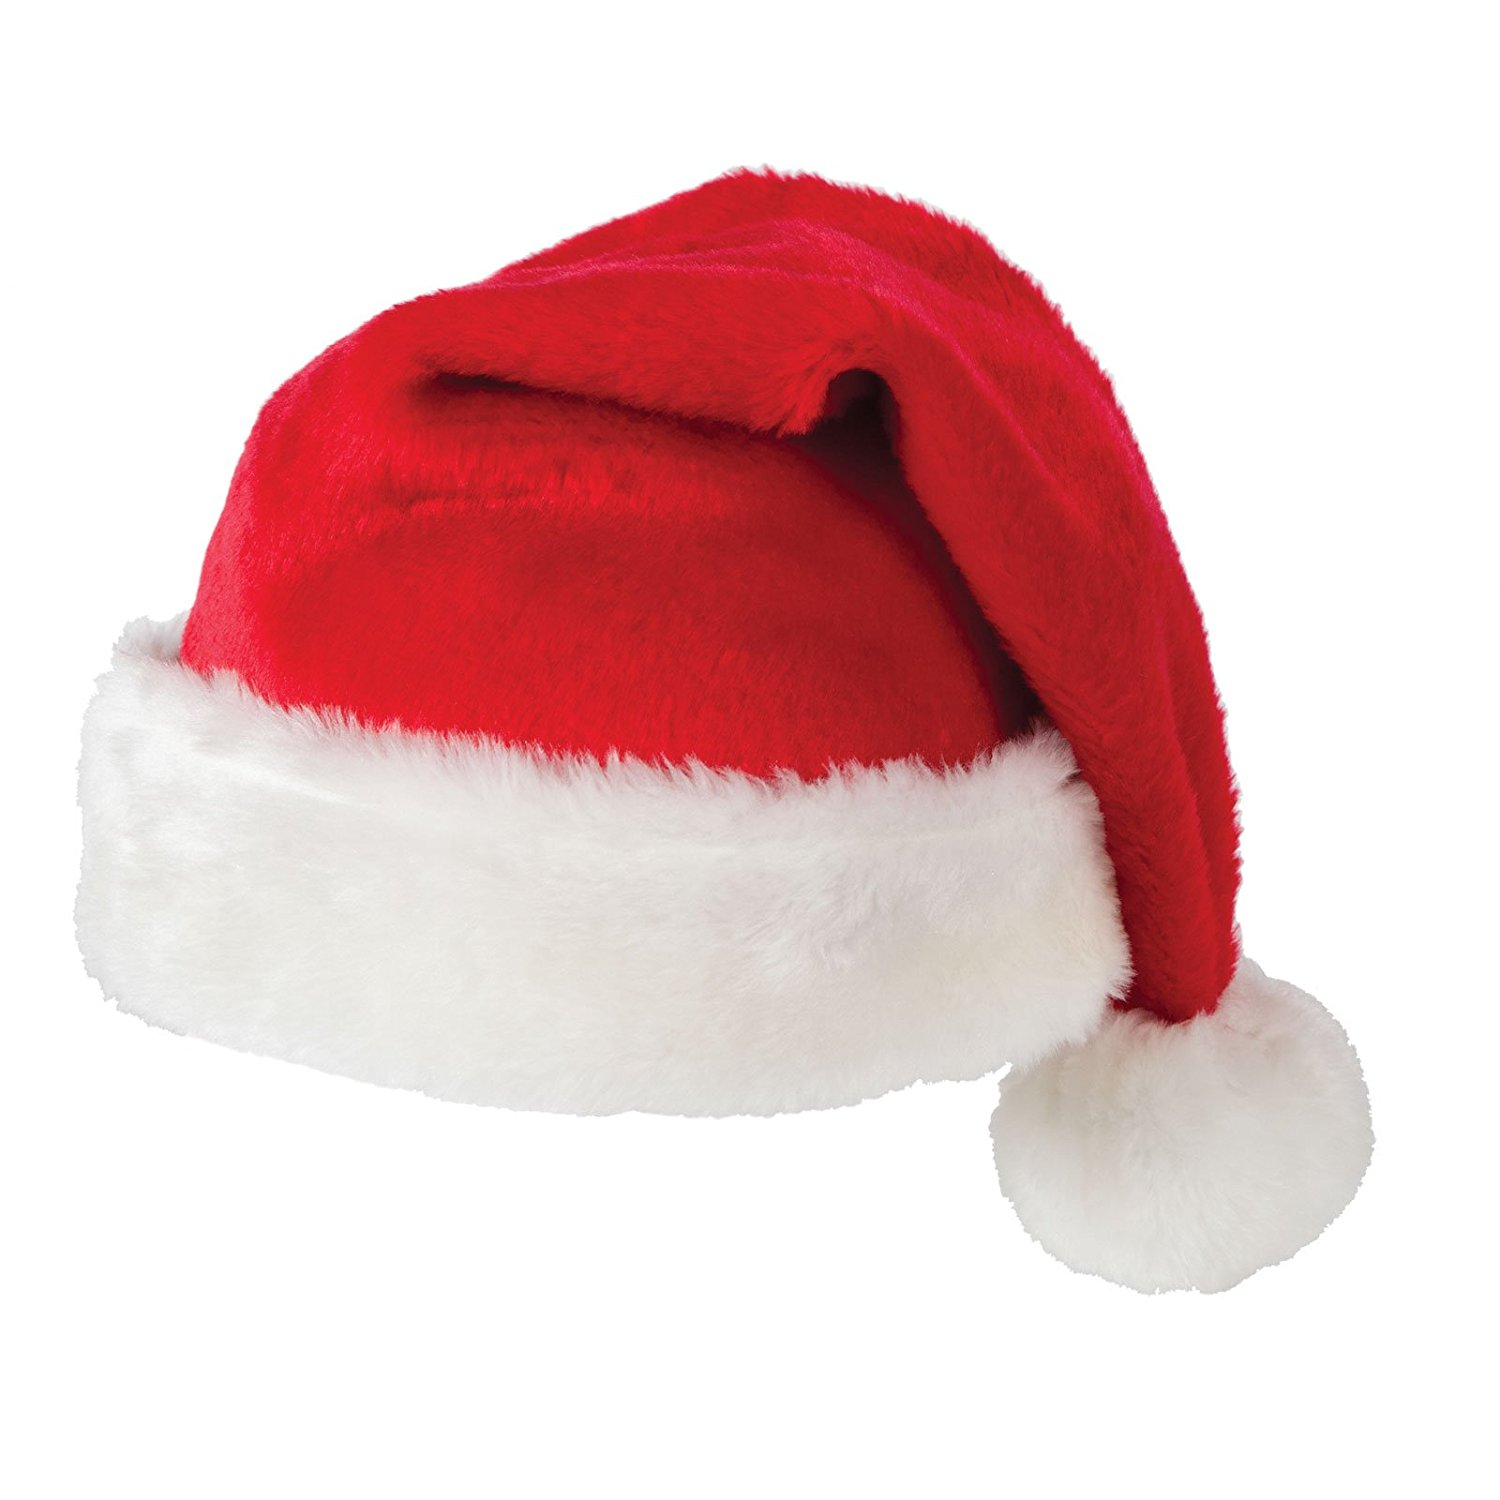 Wicked Costumes Super Deluxe Santa Hat Outfit Accessory for ...